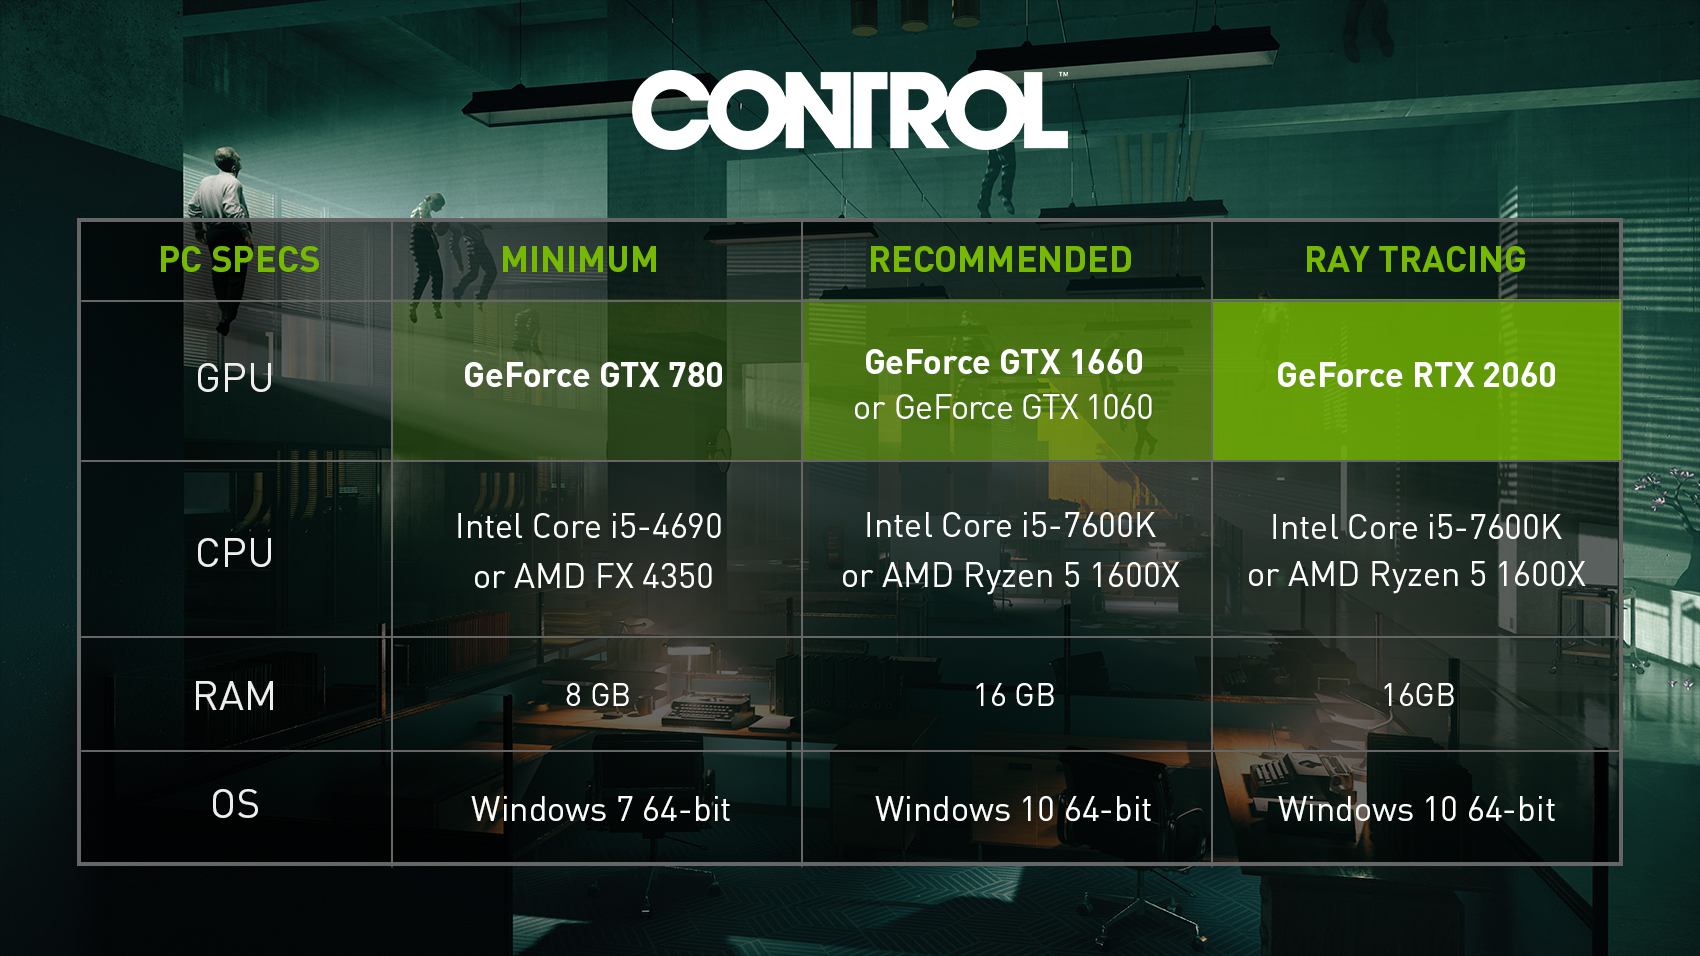 Control System Requirements and New Ray Tracing Trailer Released